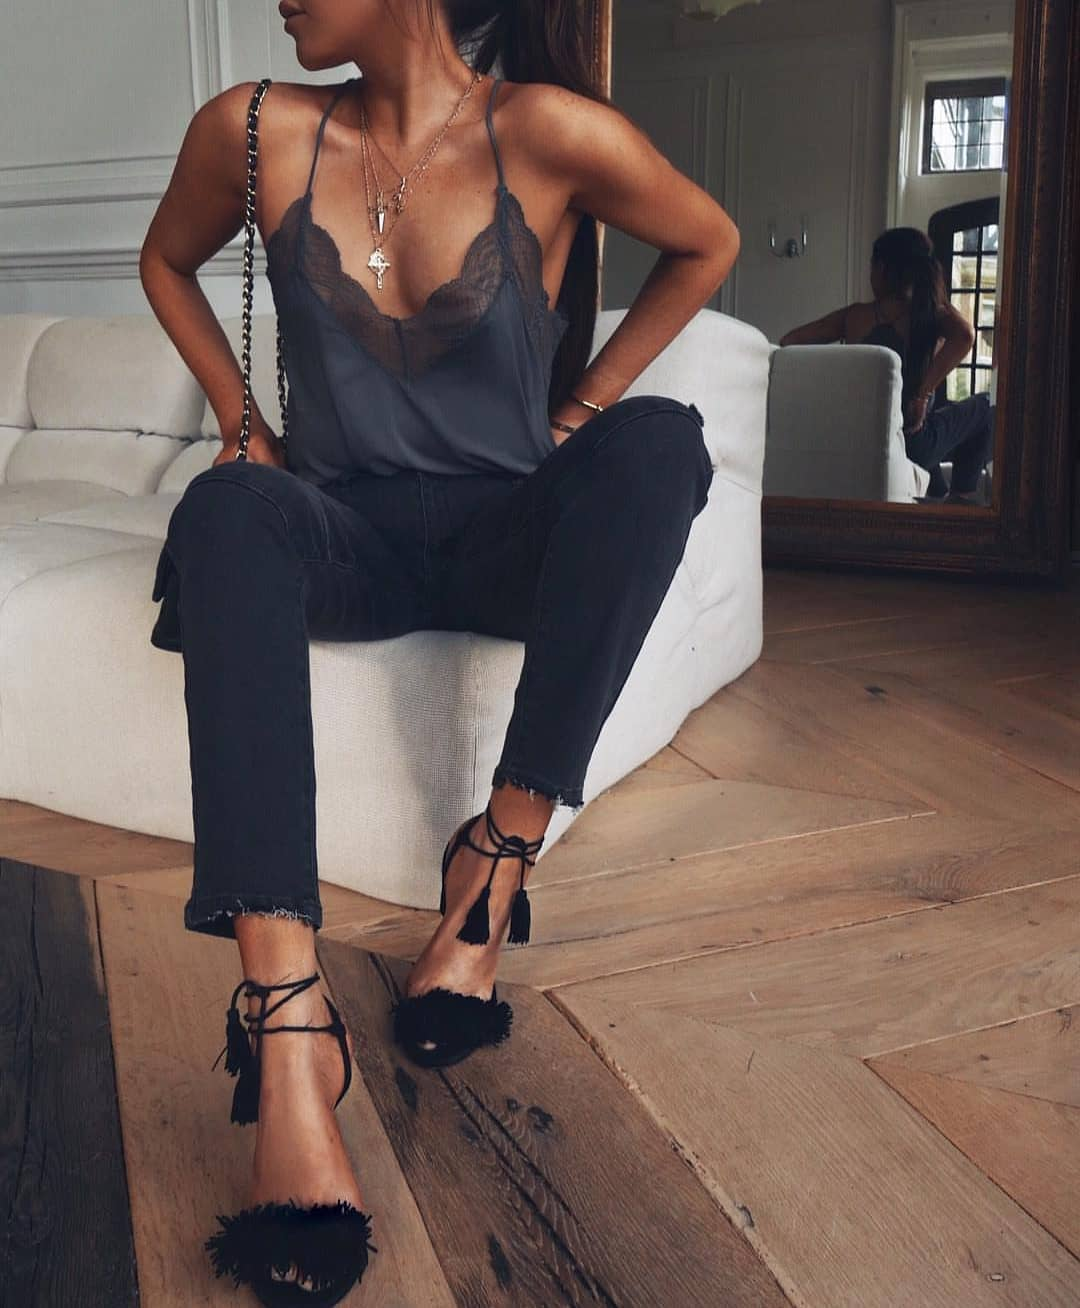 Slip Tank Top And Black Sim Jeans With Tasseled Black Sandals For Summer 2019